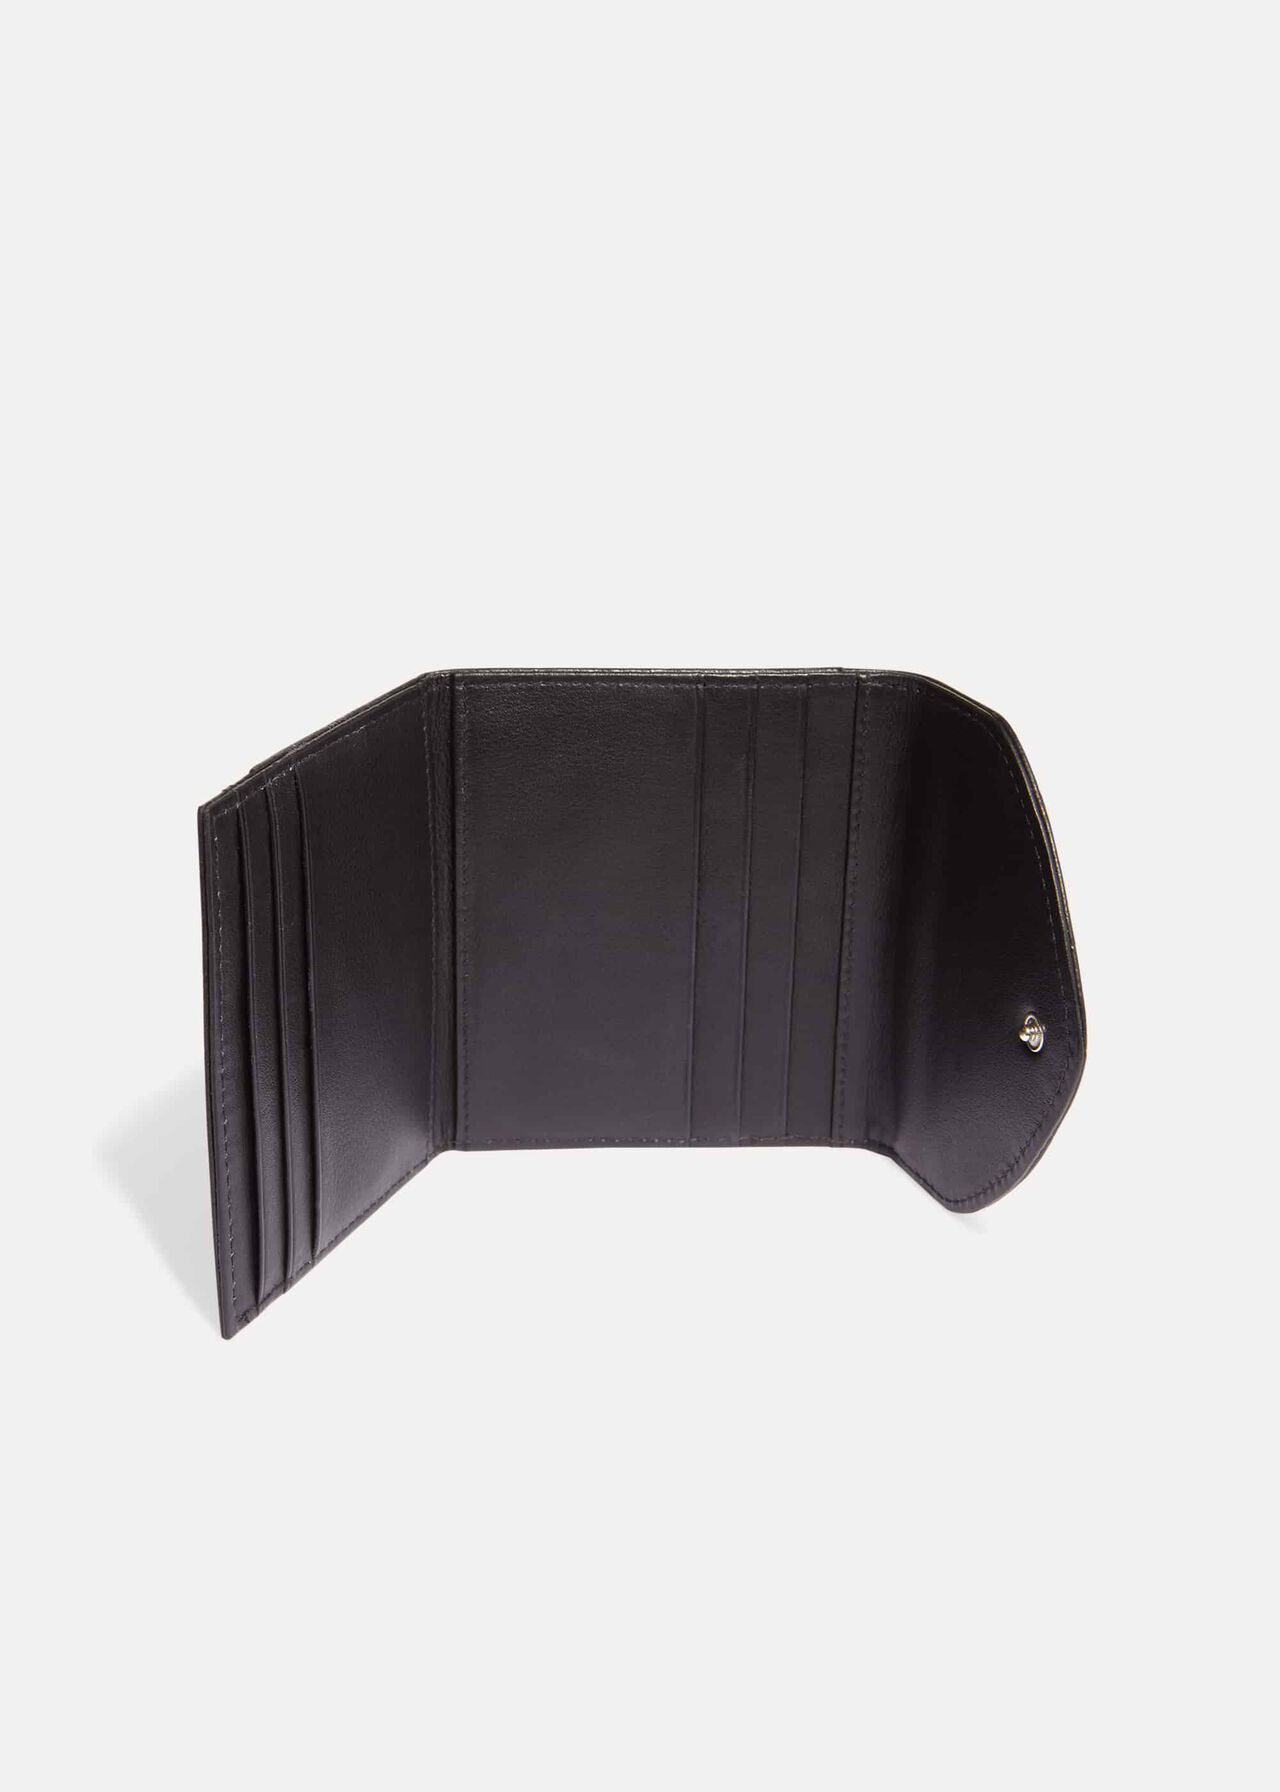 Darby Leather Card Holder